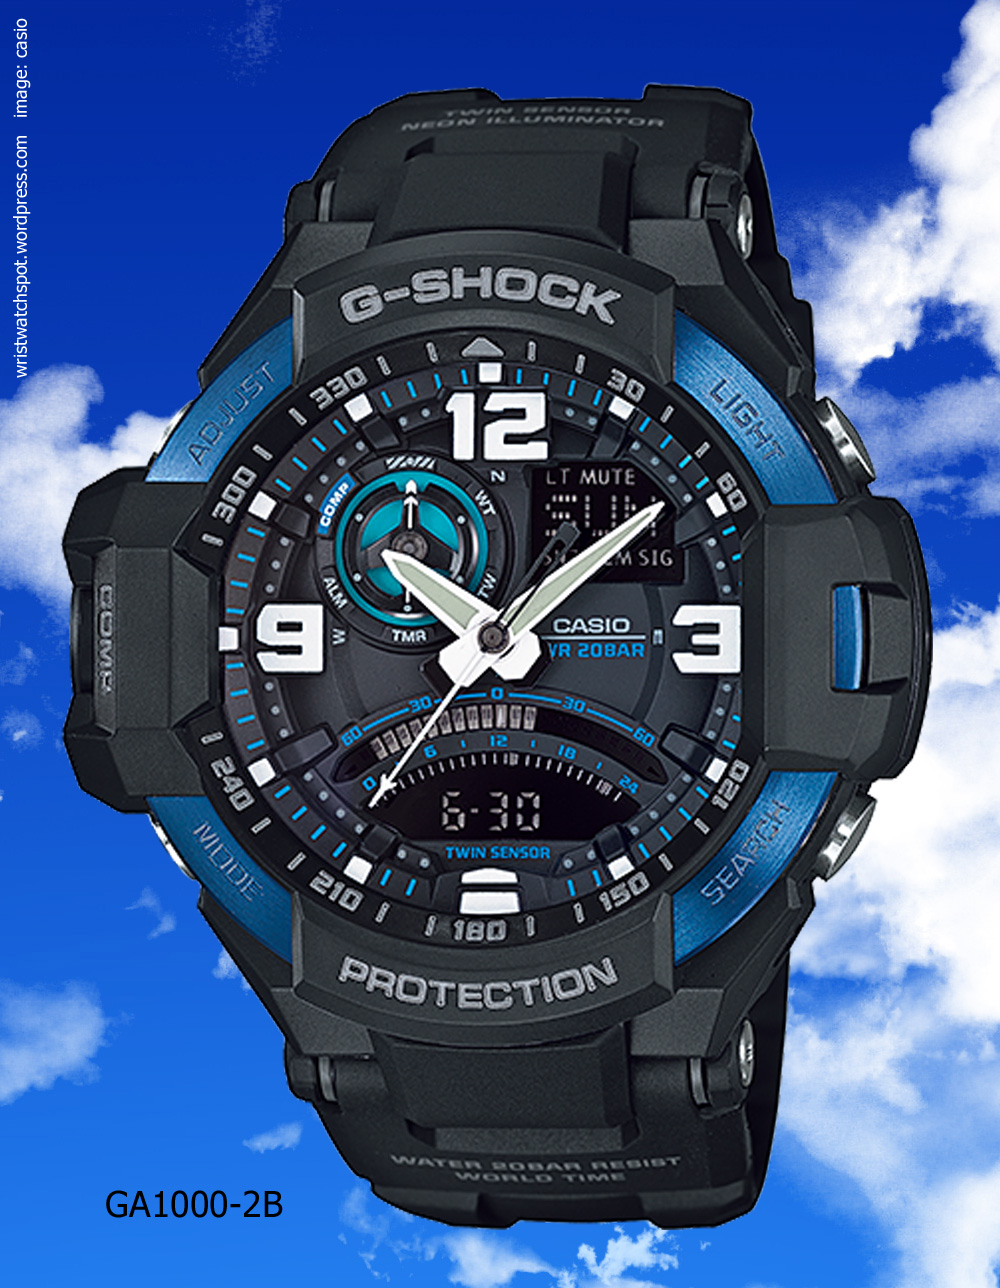 Aviation series g shock watches wrist watch spot for Watches g shock